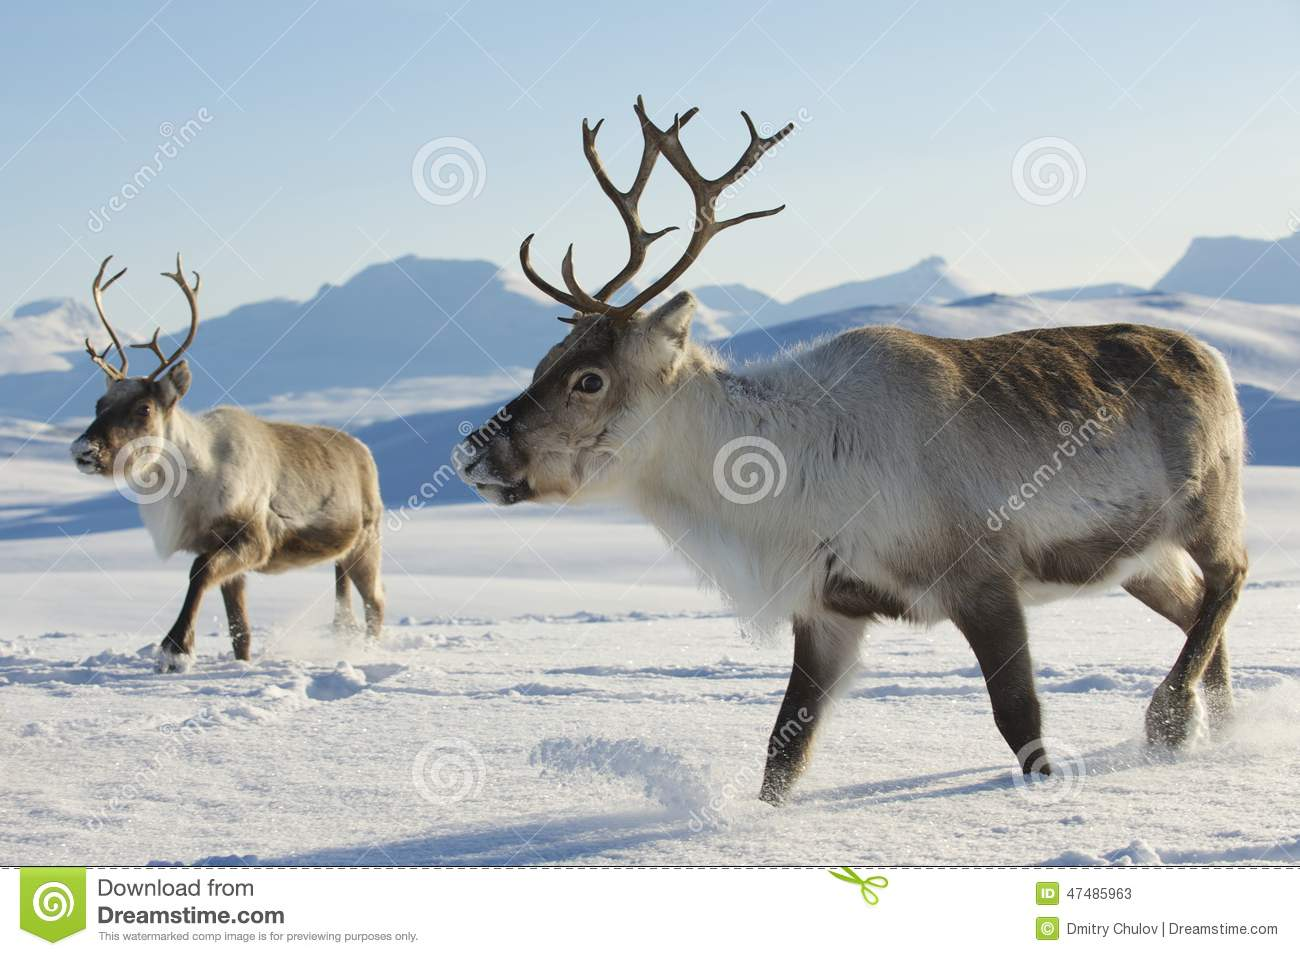 Nature Images 2mb: Reindeers In Natural Environment, Tromso Region, Northern